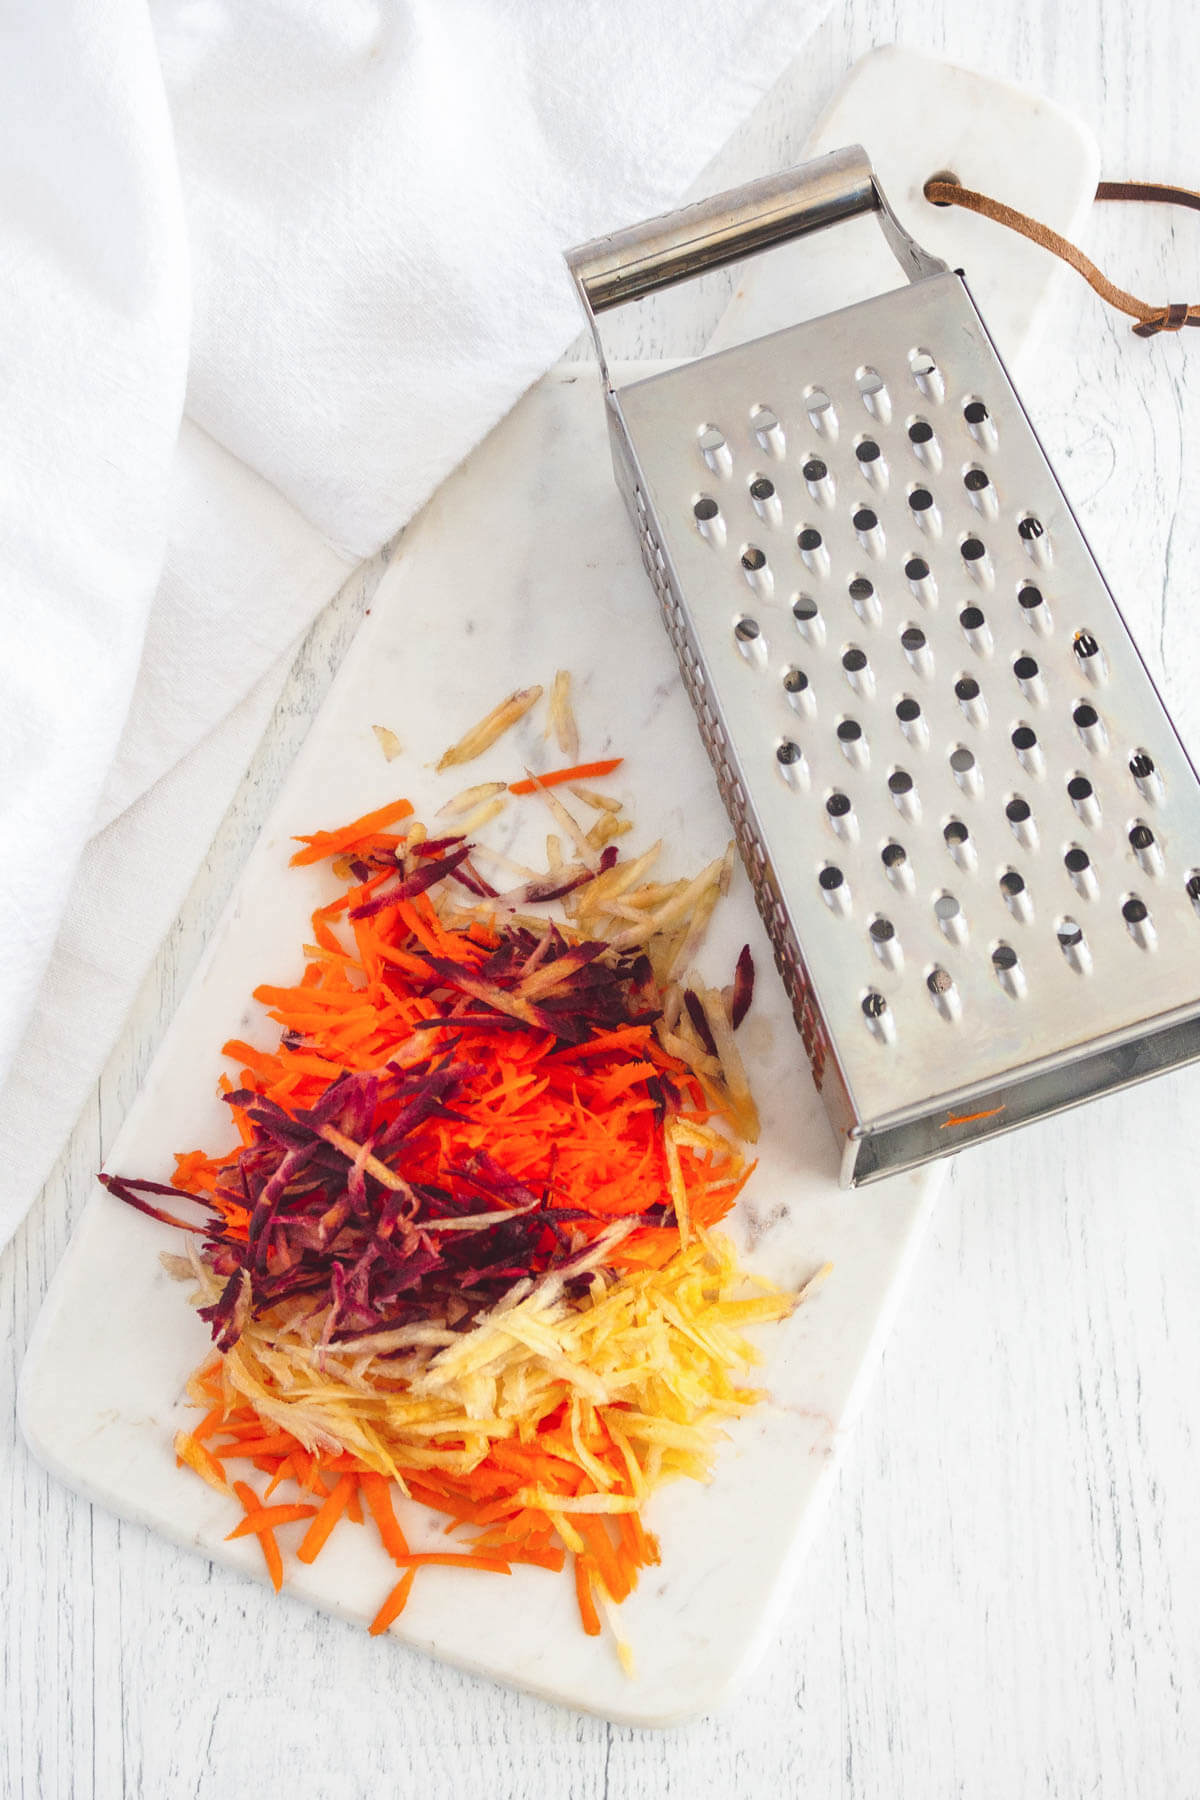 Colourful grated carrots beside a box grater.